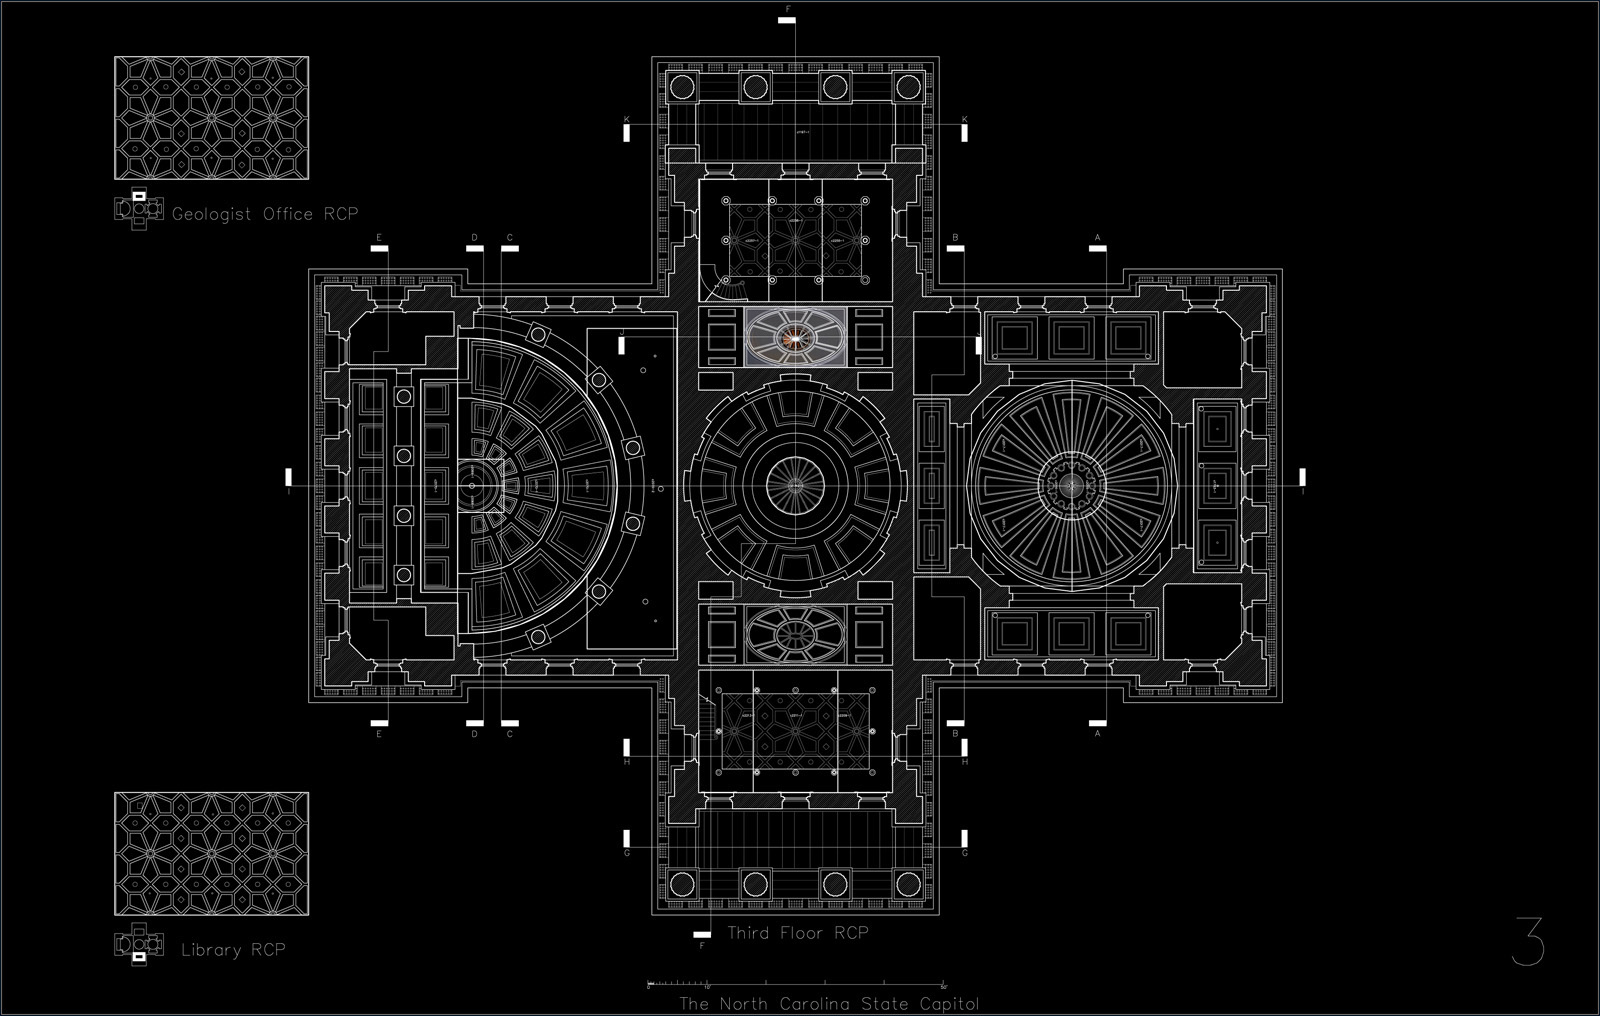 Reflected Ceiling Plans Photography Amp Architectural Photogrammetry